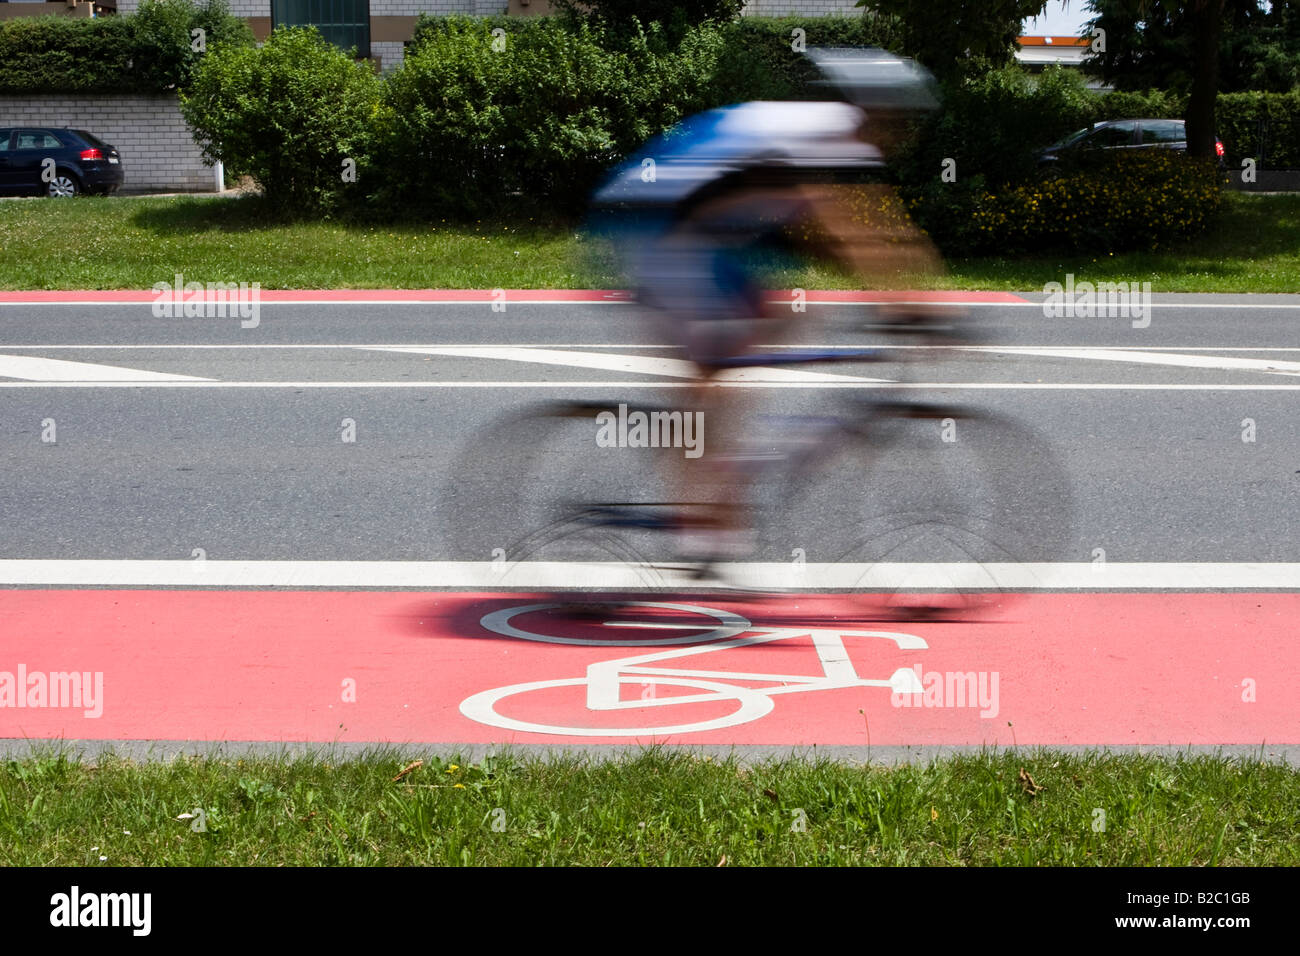 Cyclist riding quickly along a red bike lane with a bike lane street marking, Germany, Europe - Stock Image